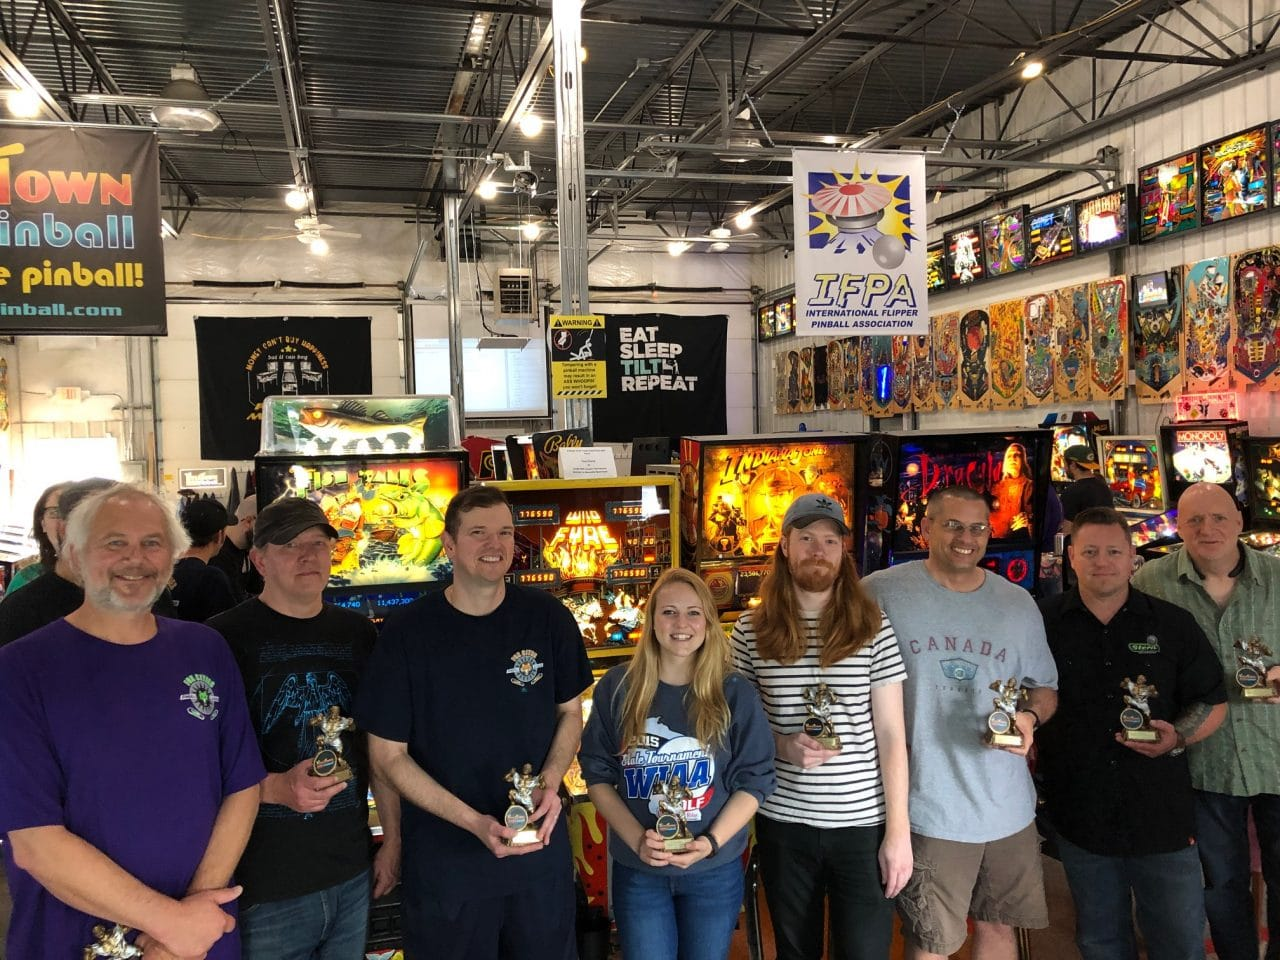 2019 Flipper Frenzy Pinball Tournament in Green Bay, WI